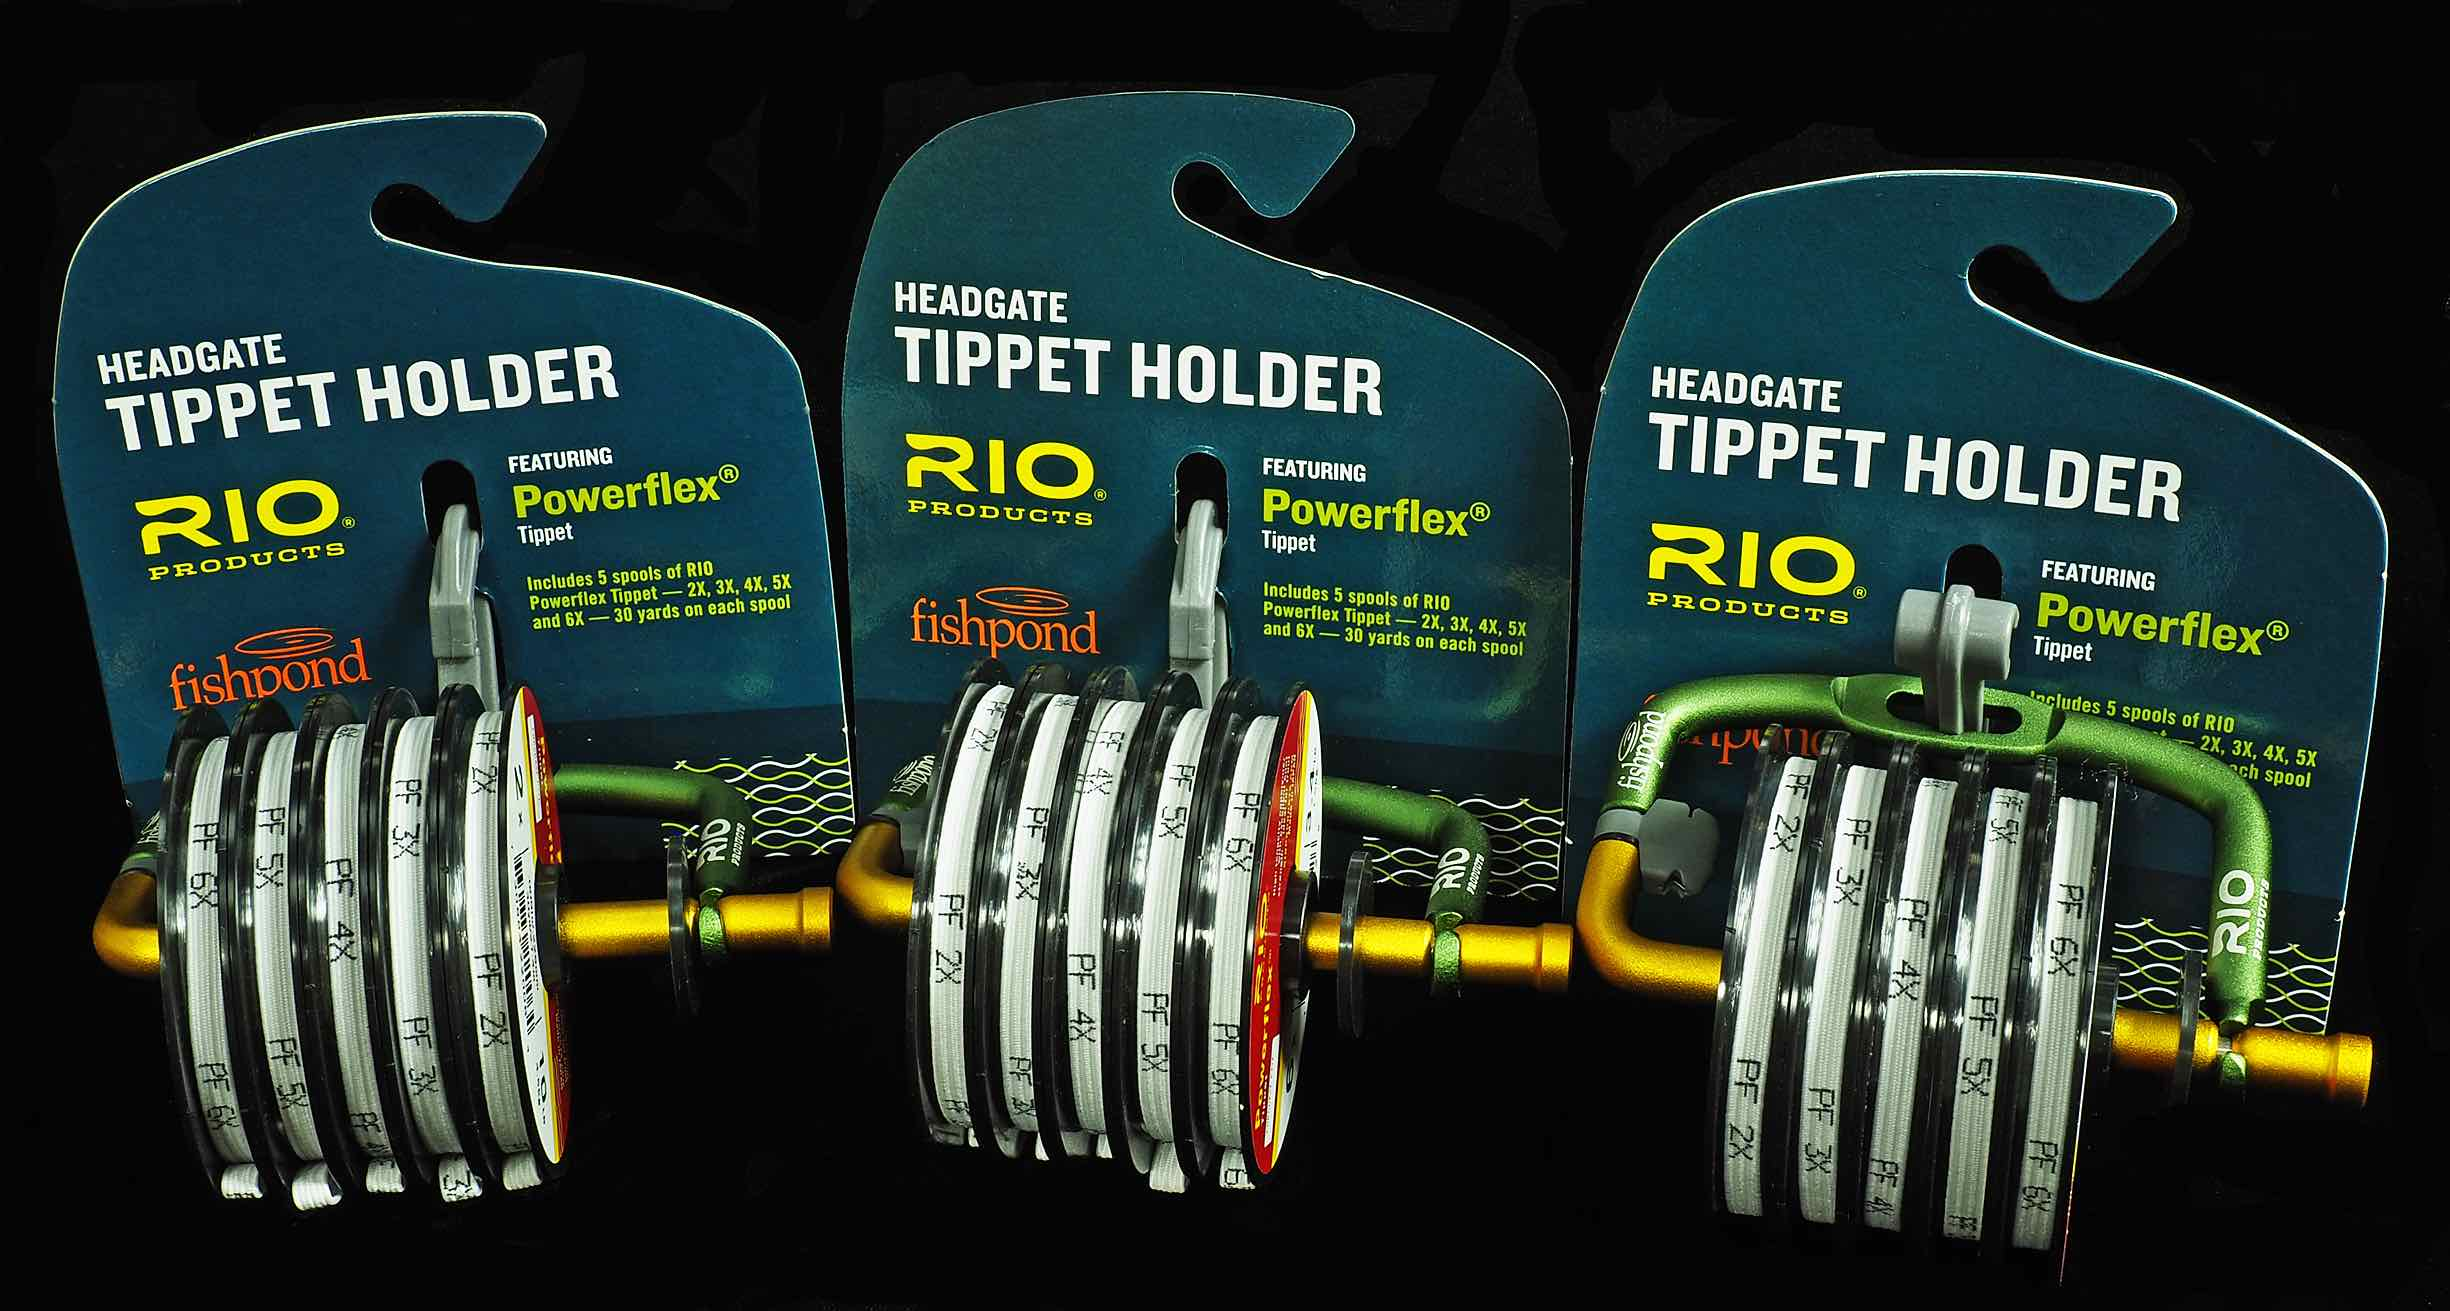 RIO Headgate Tippet Holder By Fishpond